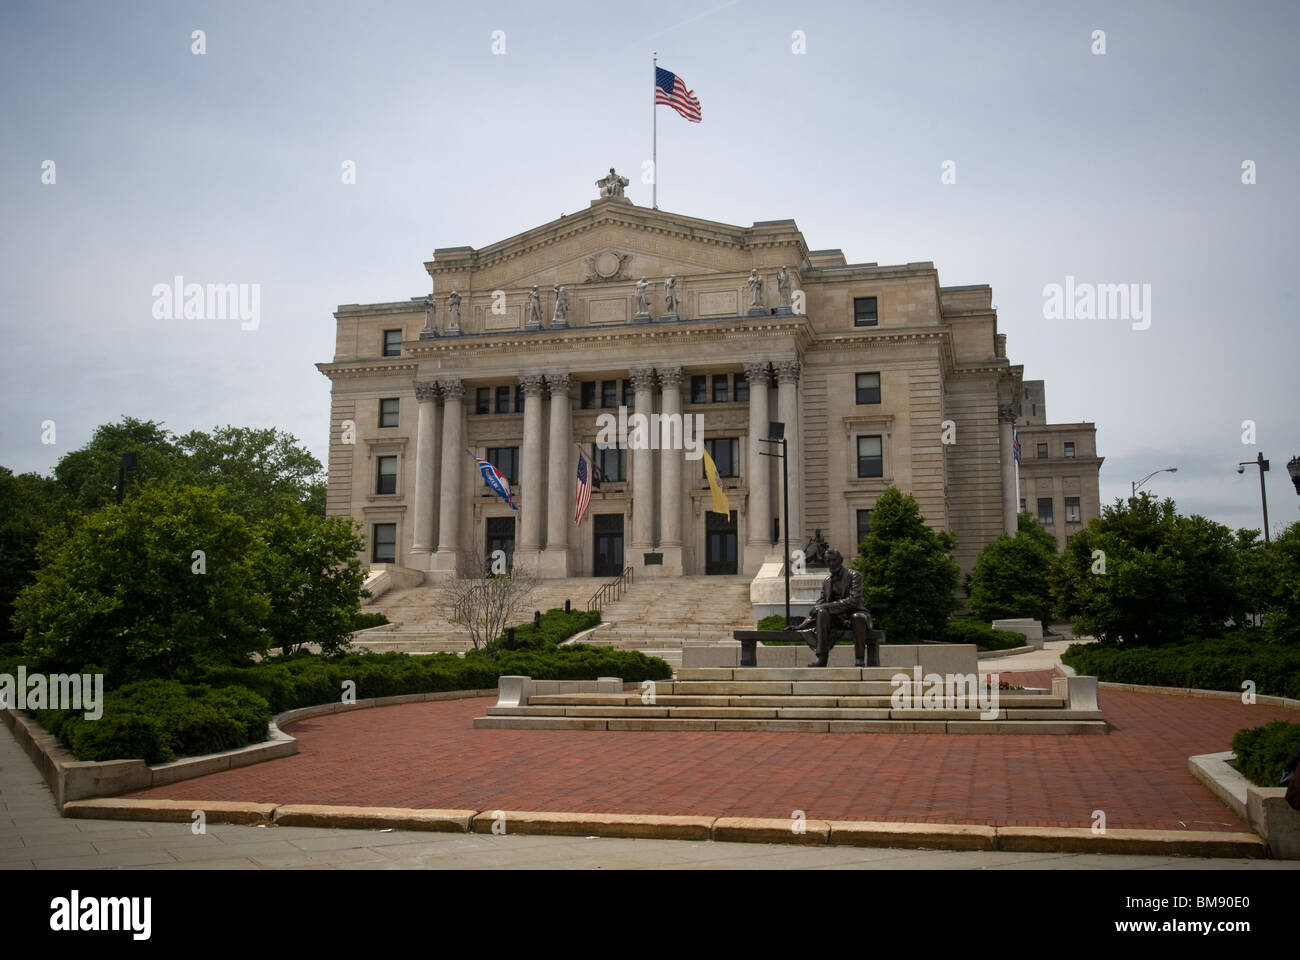 The Essex County Courthouse in Newark, NJ is seen on Saturday, May 22, 2010. (© Richard B. Levine) - Stock Image